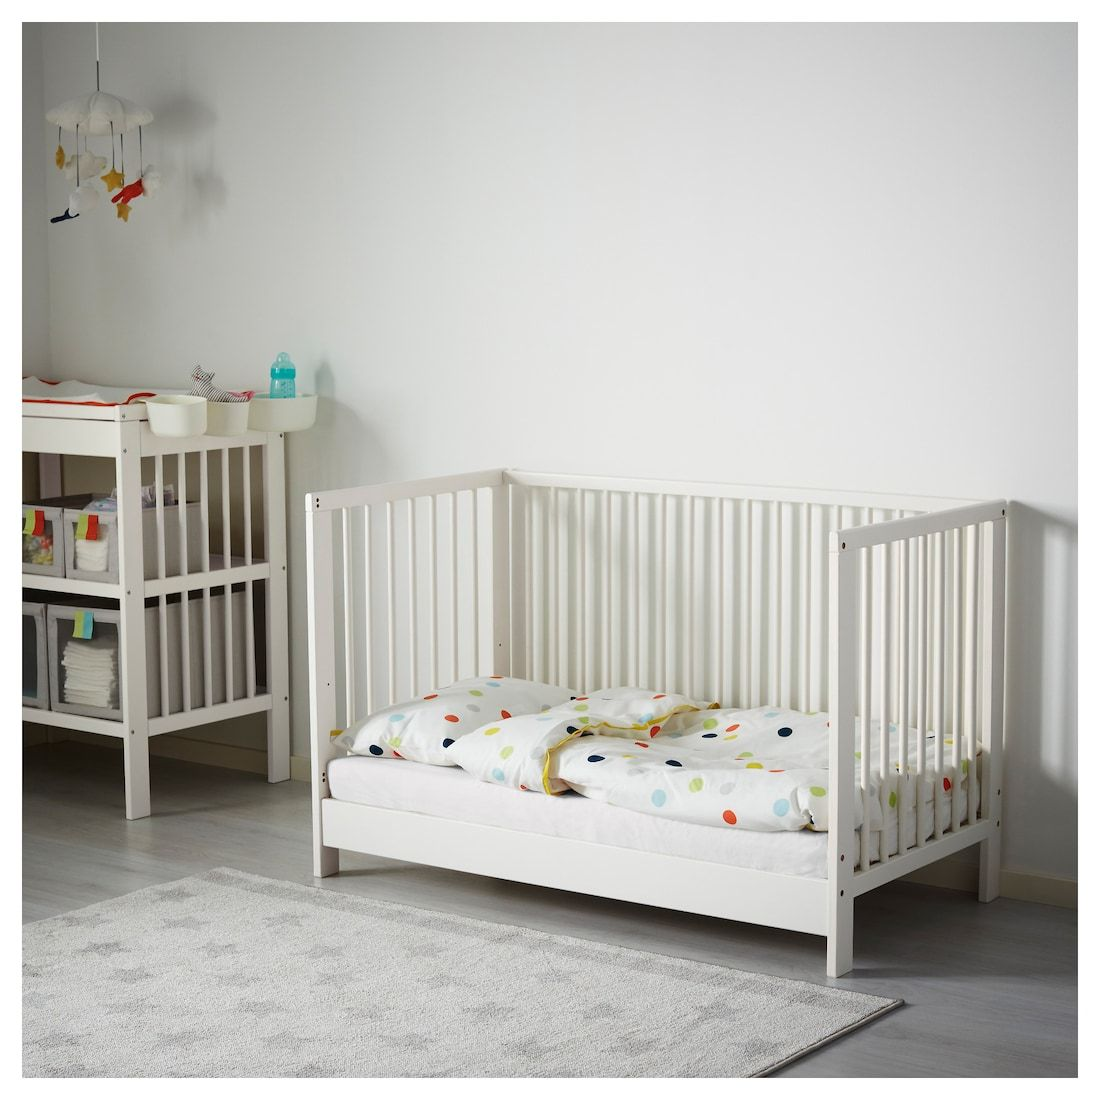 Gulliver Crib White 27 1 2x52 With Images Ikea Baby Room